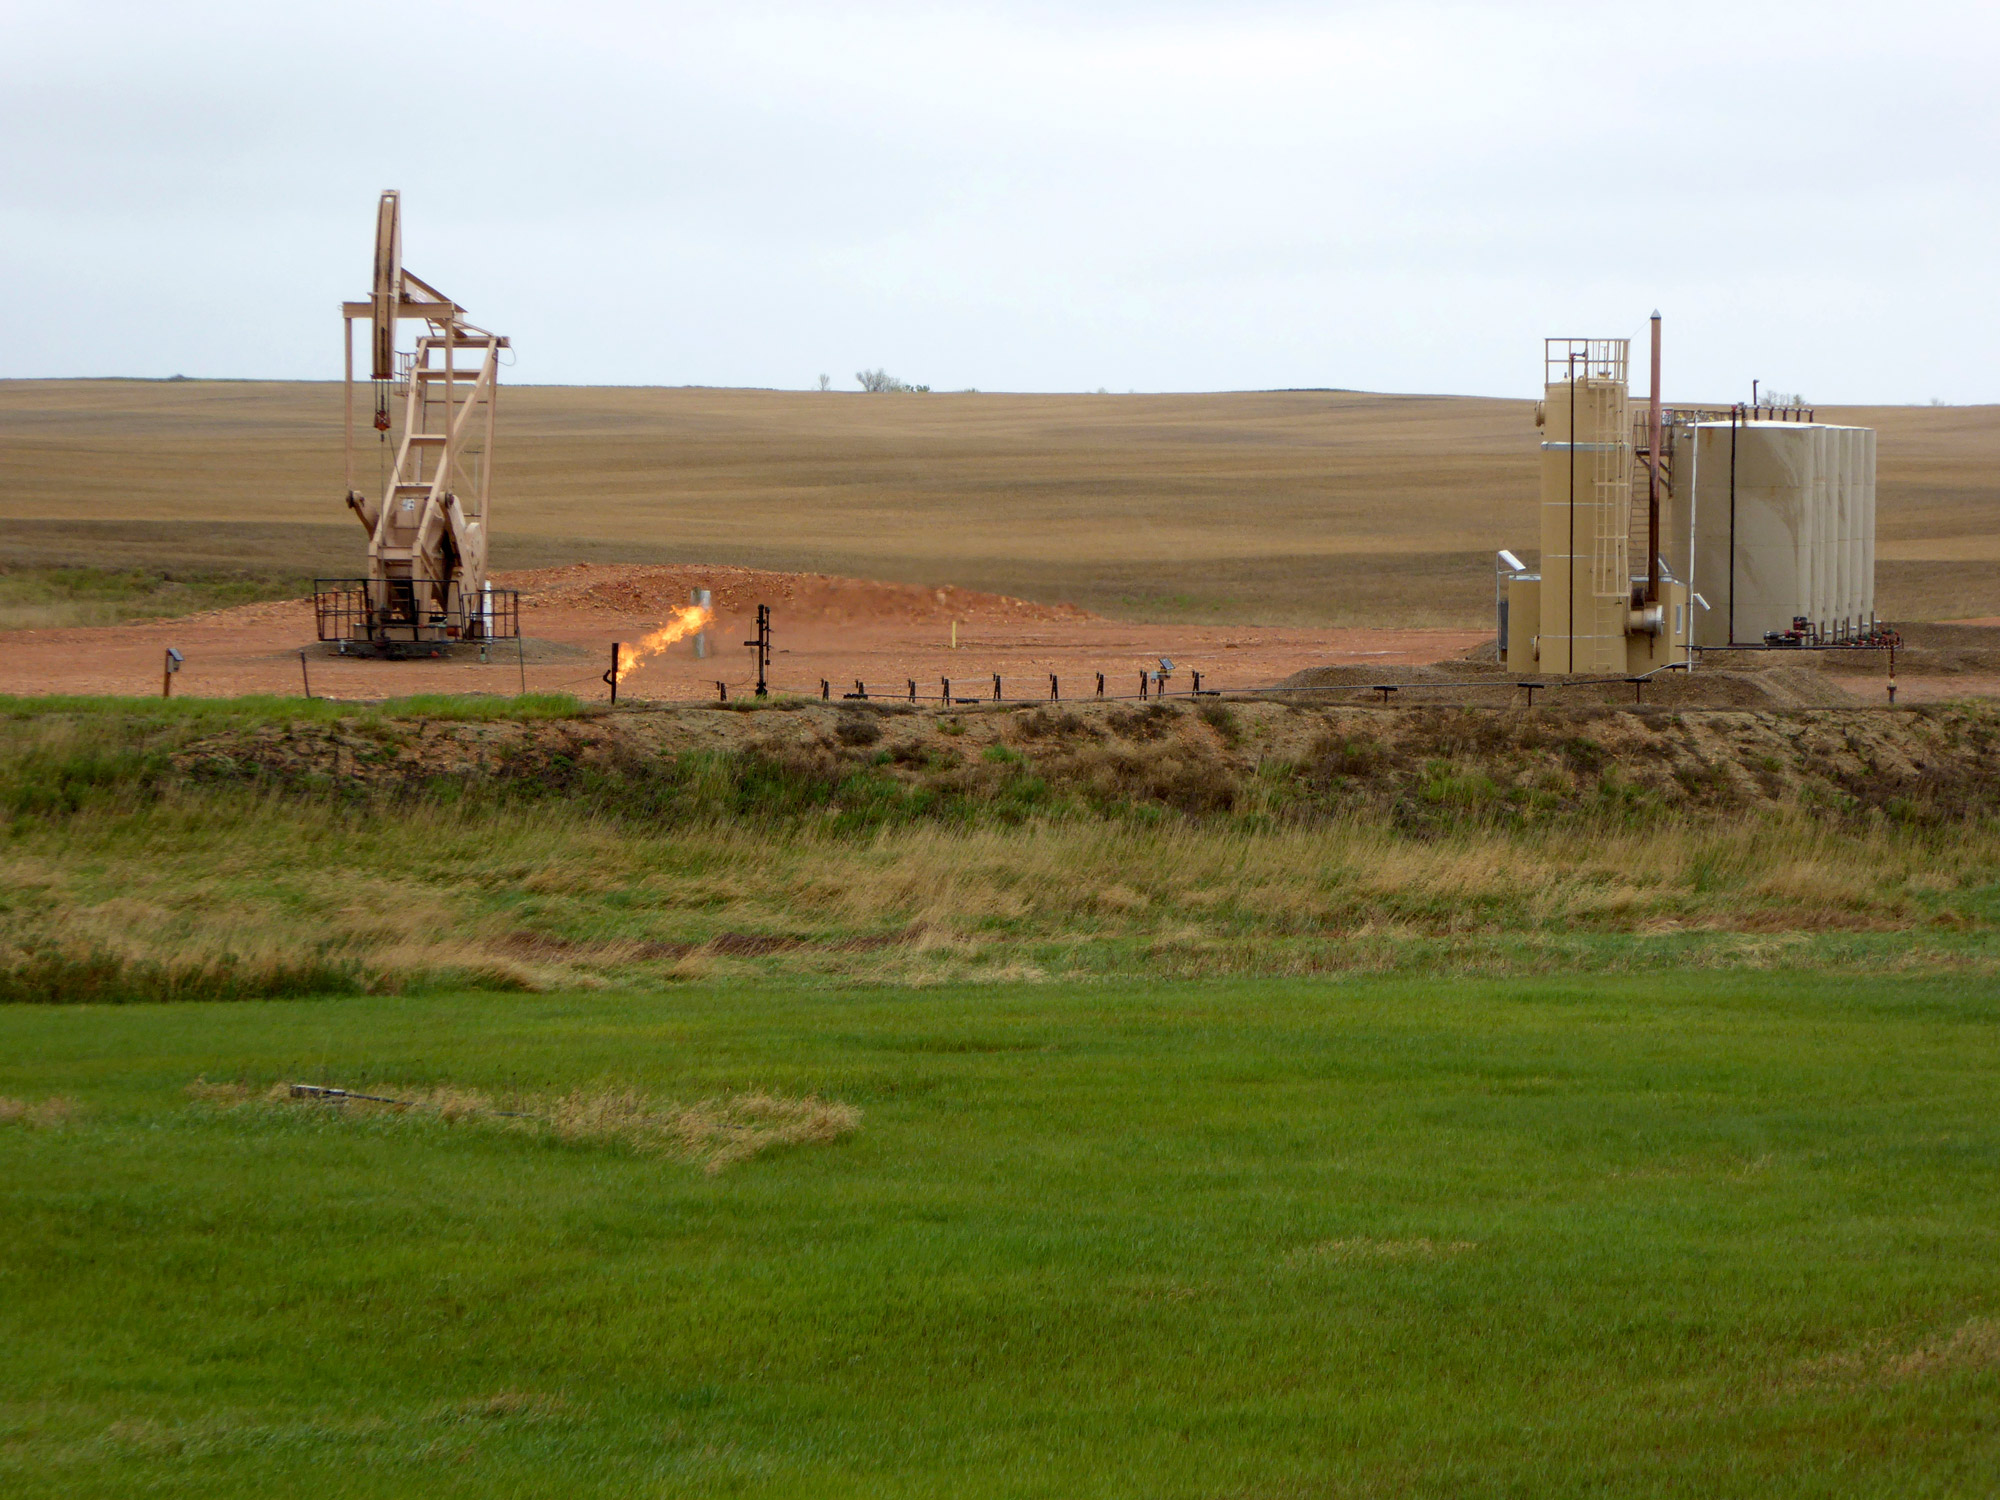 Excess natural gas is flared at a well pad in McKenzie County, ND